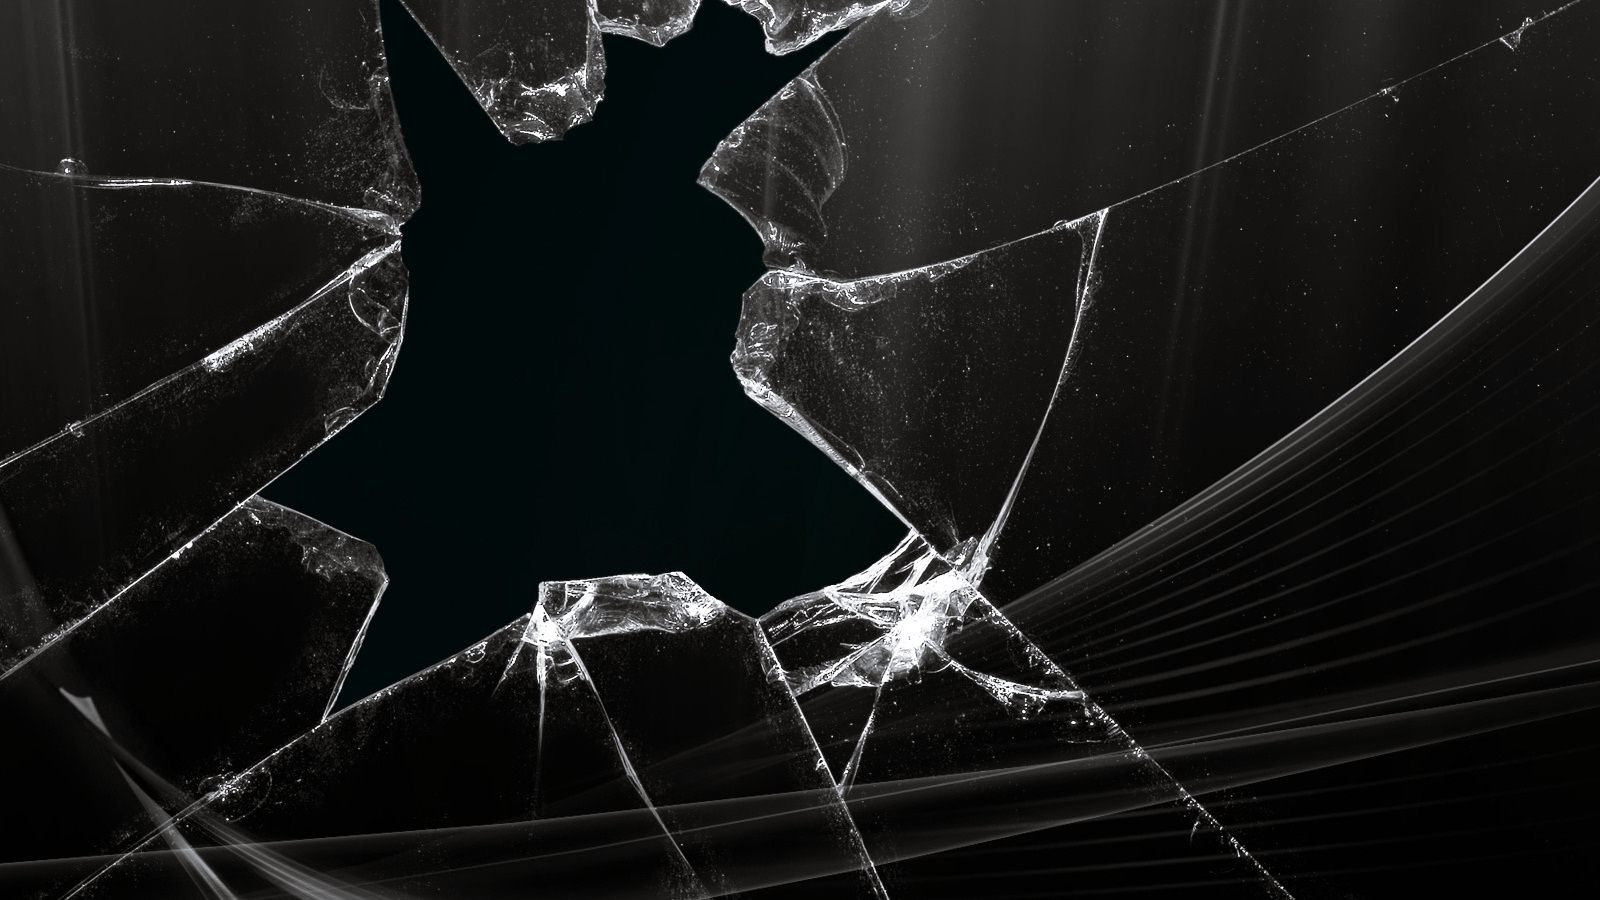 Broken-Screen-wallpaper-wpc9003205